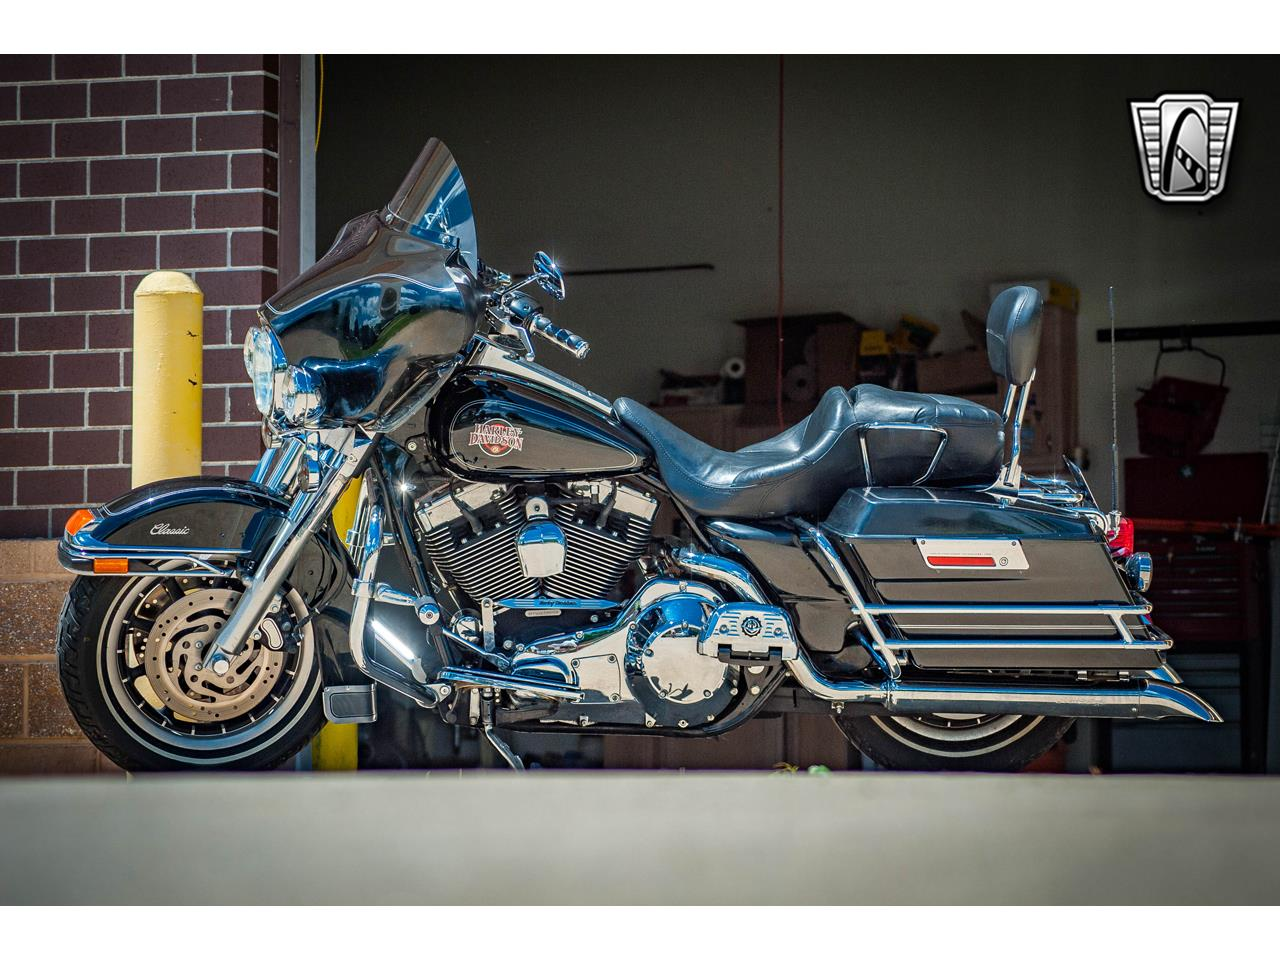 2004 Harley-Davidson Motorcycle for sale in O'Fallon, IL – photo 44